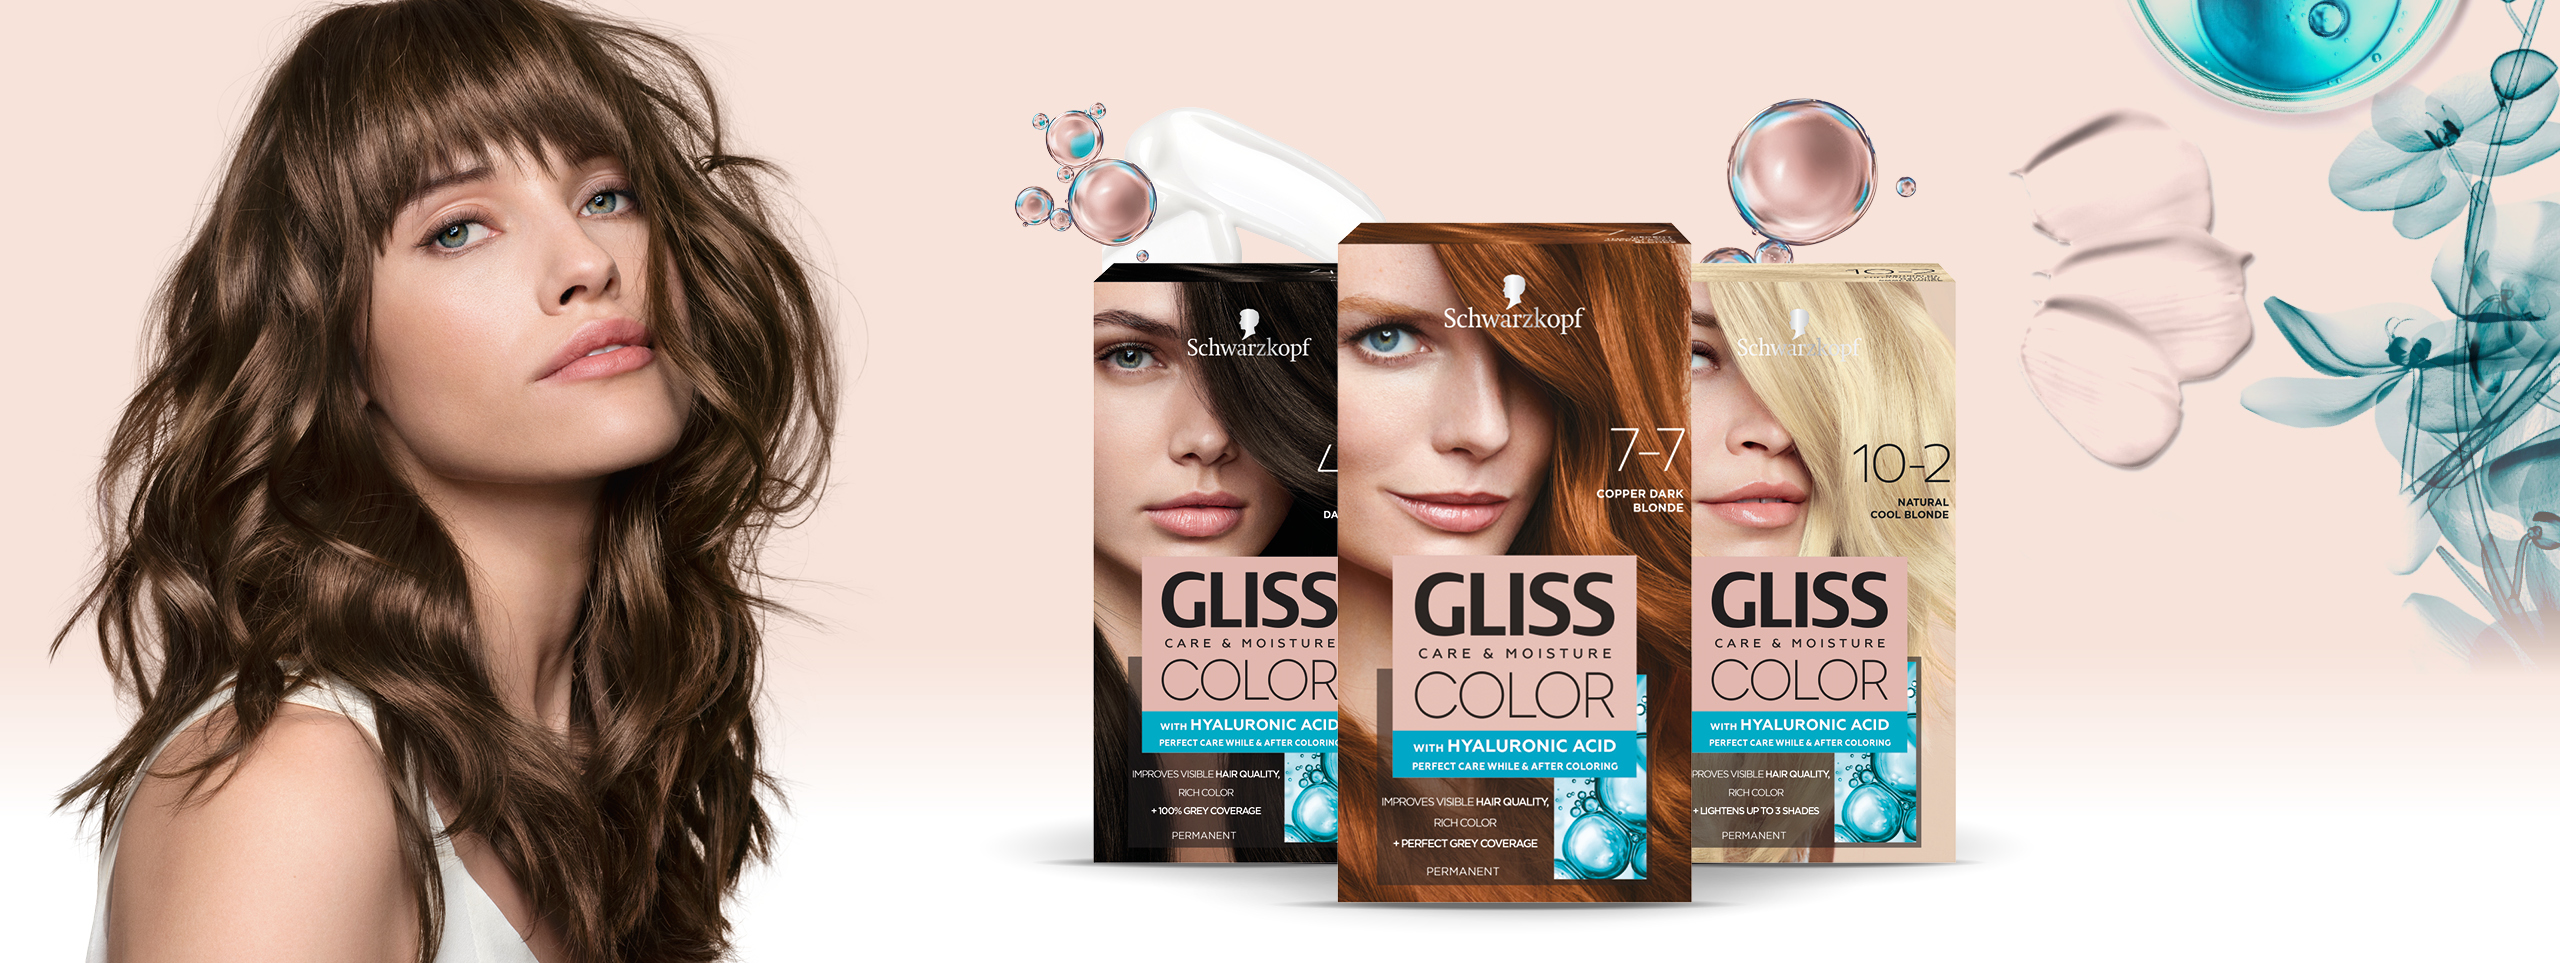 Schwarzkopf_Gliss_Color_Starter_Mood_2560x963_3